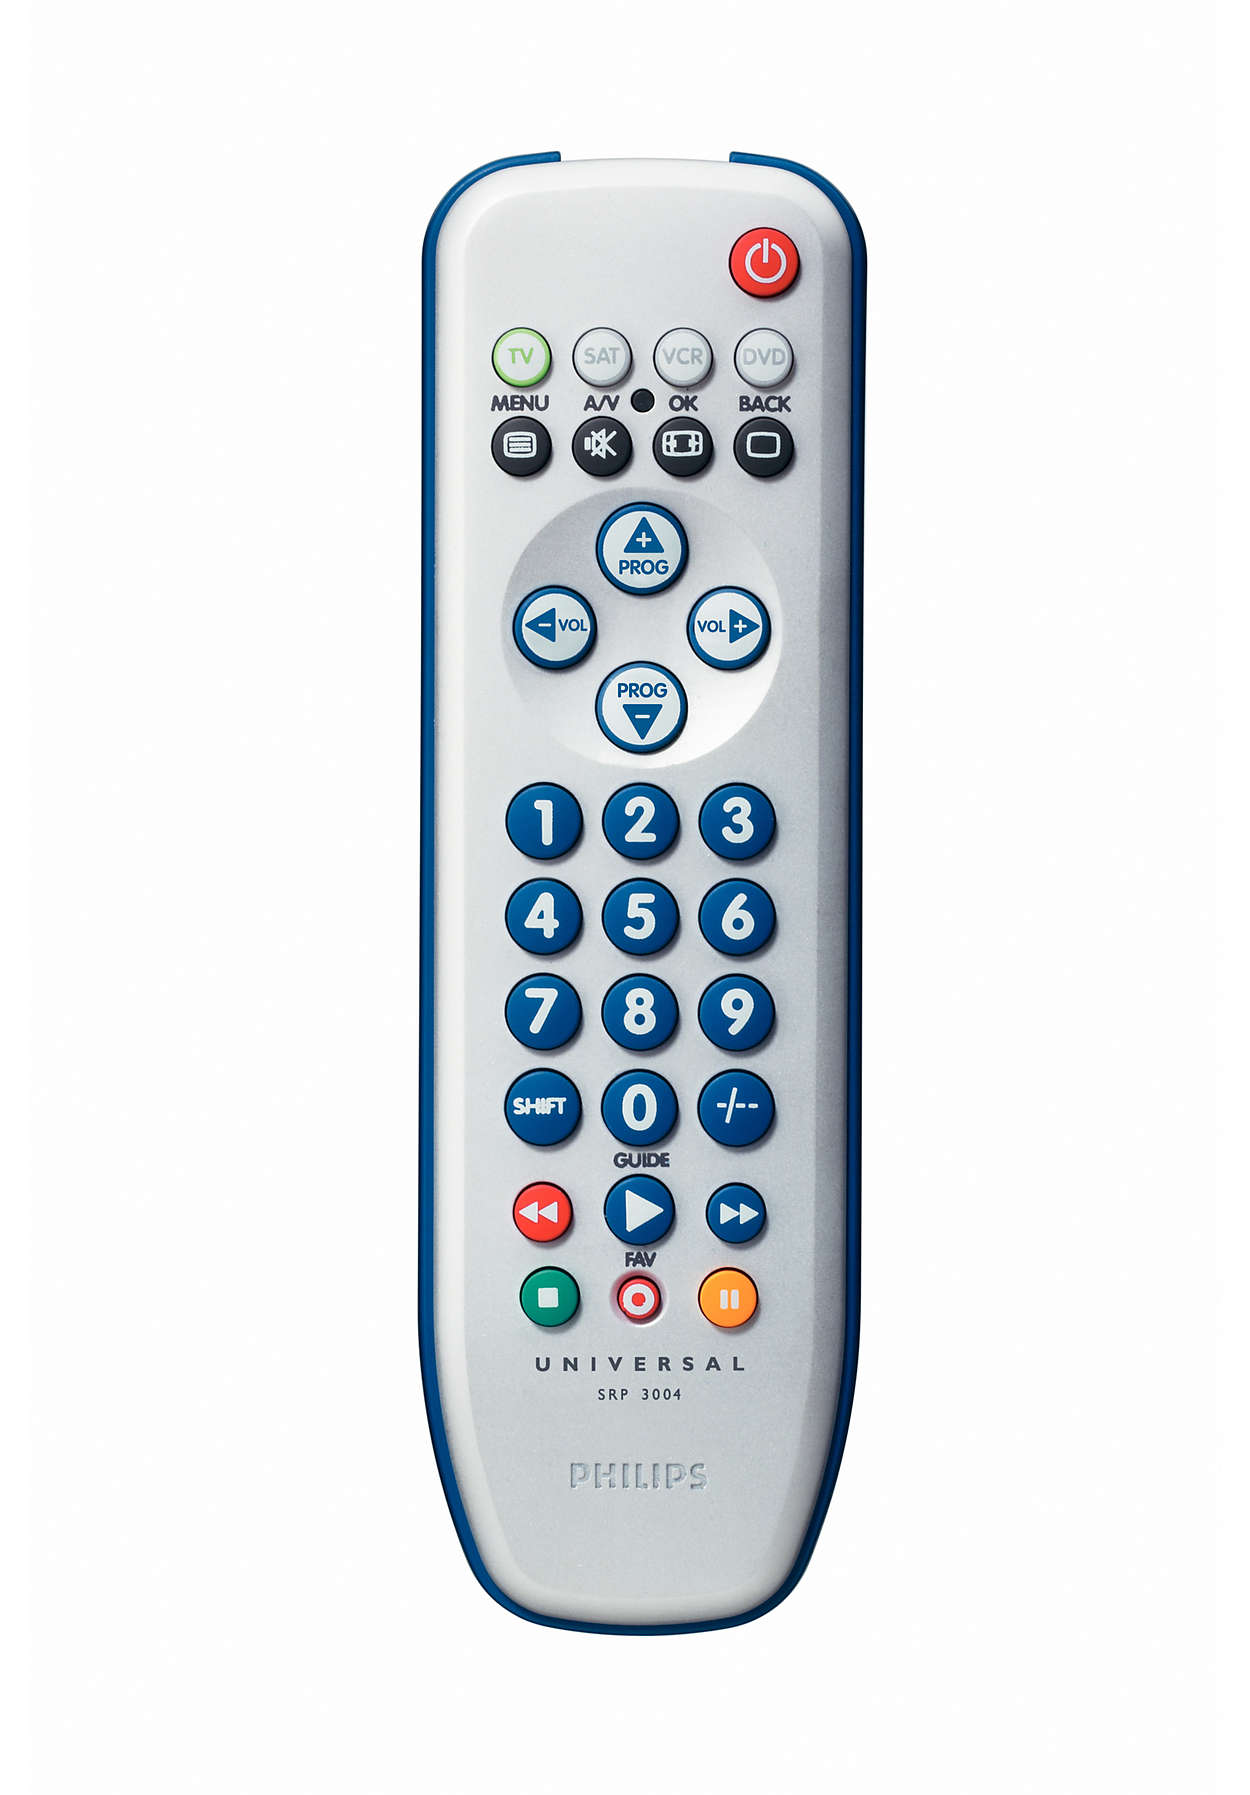 Perfect replacement Universal remote control SRP3004/10 | Philips